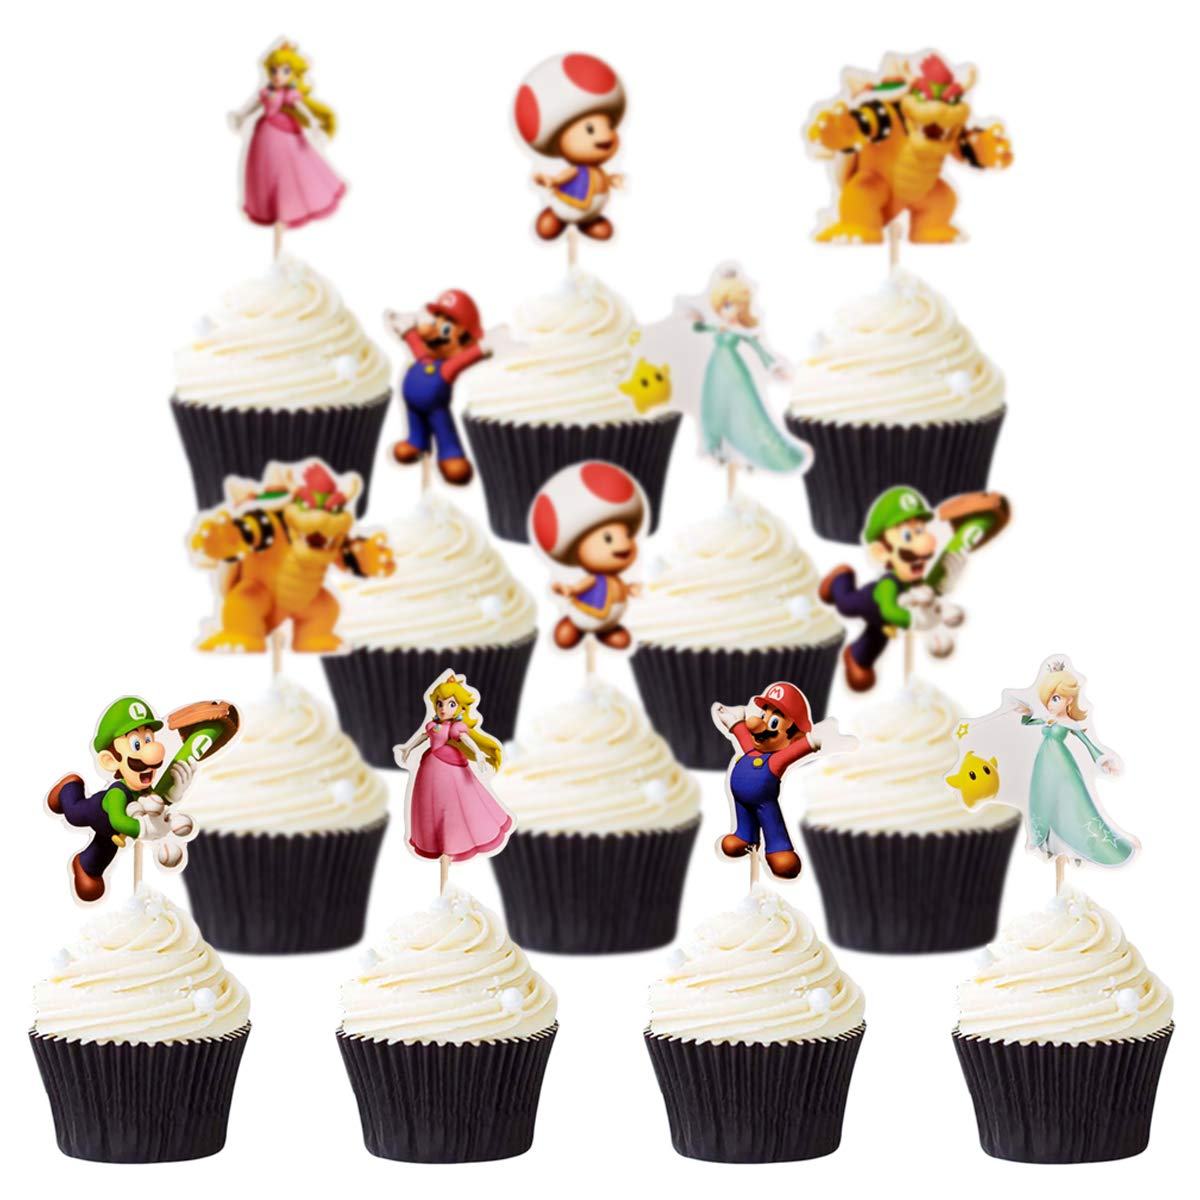 Cake topper for children's birthday party, cake decoration for baby shower(Super Mario 48pcs)